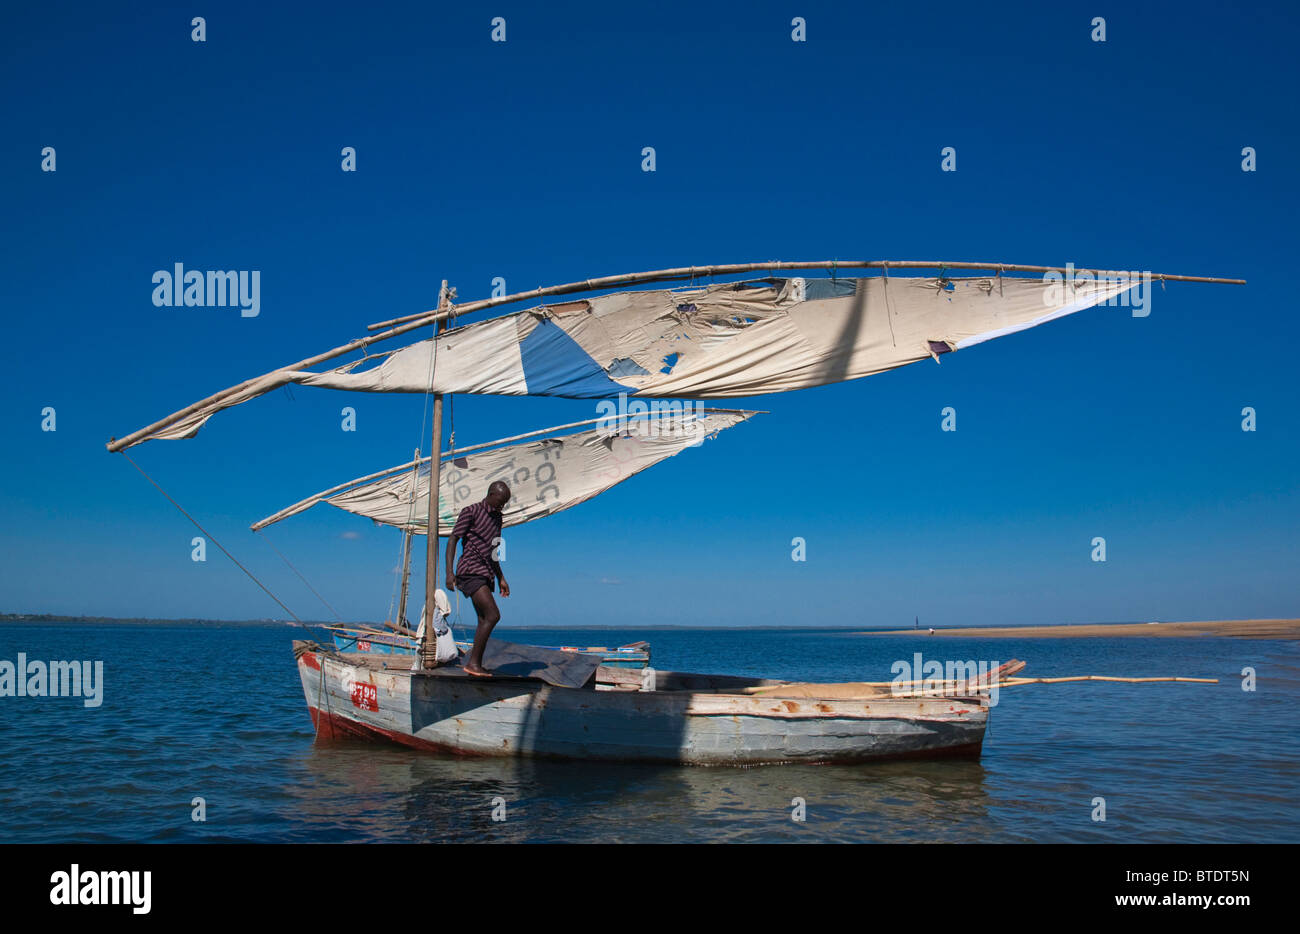 A dhow or traditional sailing boat sailing on a blue sea - Stock Image